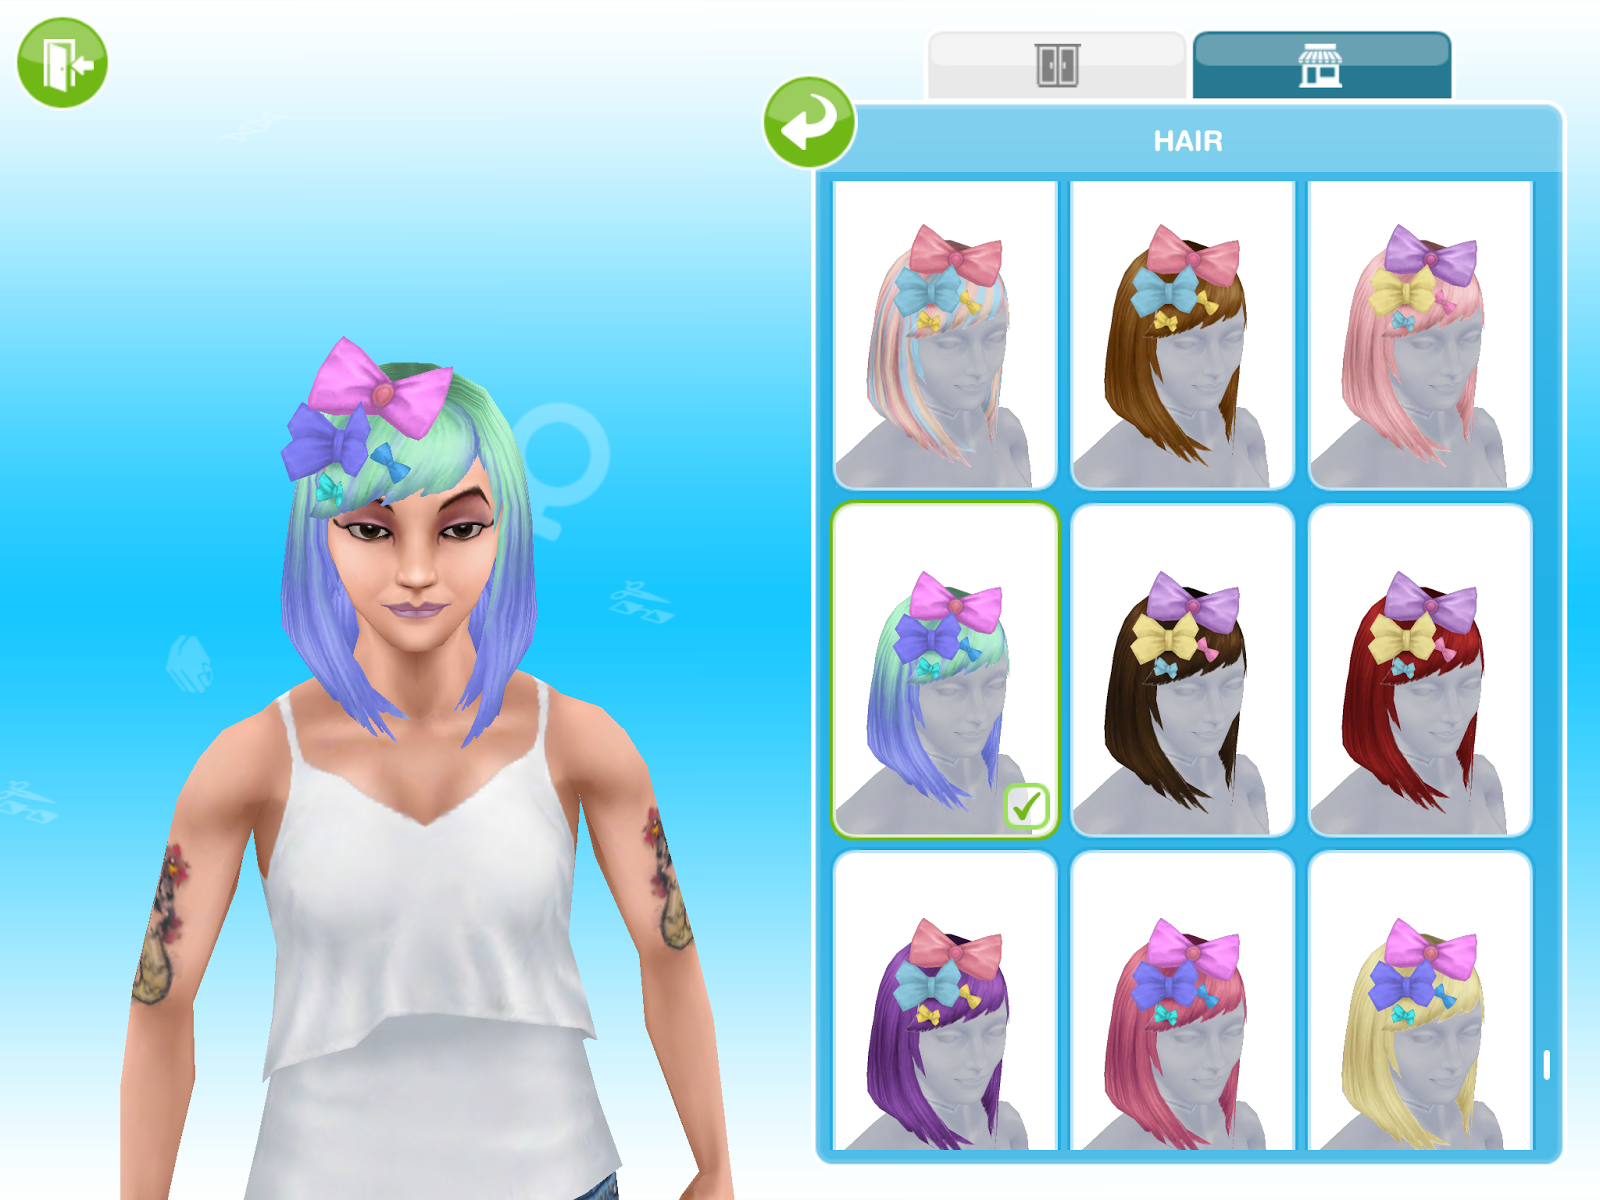 Missy's Sims and Stuff: The Sims Freeplay ~ Boutique Hair Event Quest Walkthrough + Tips